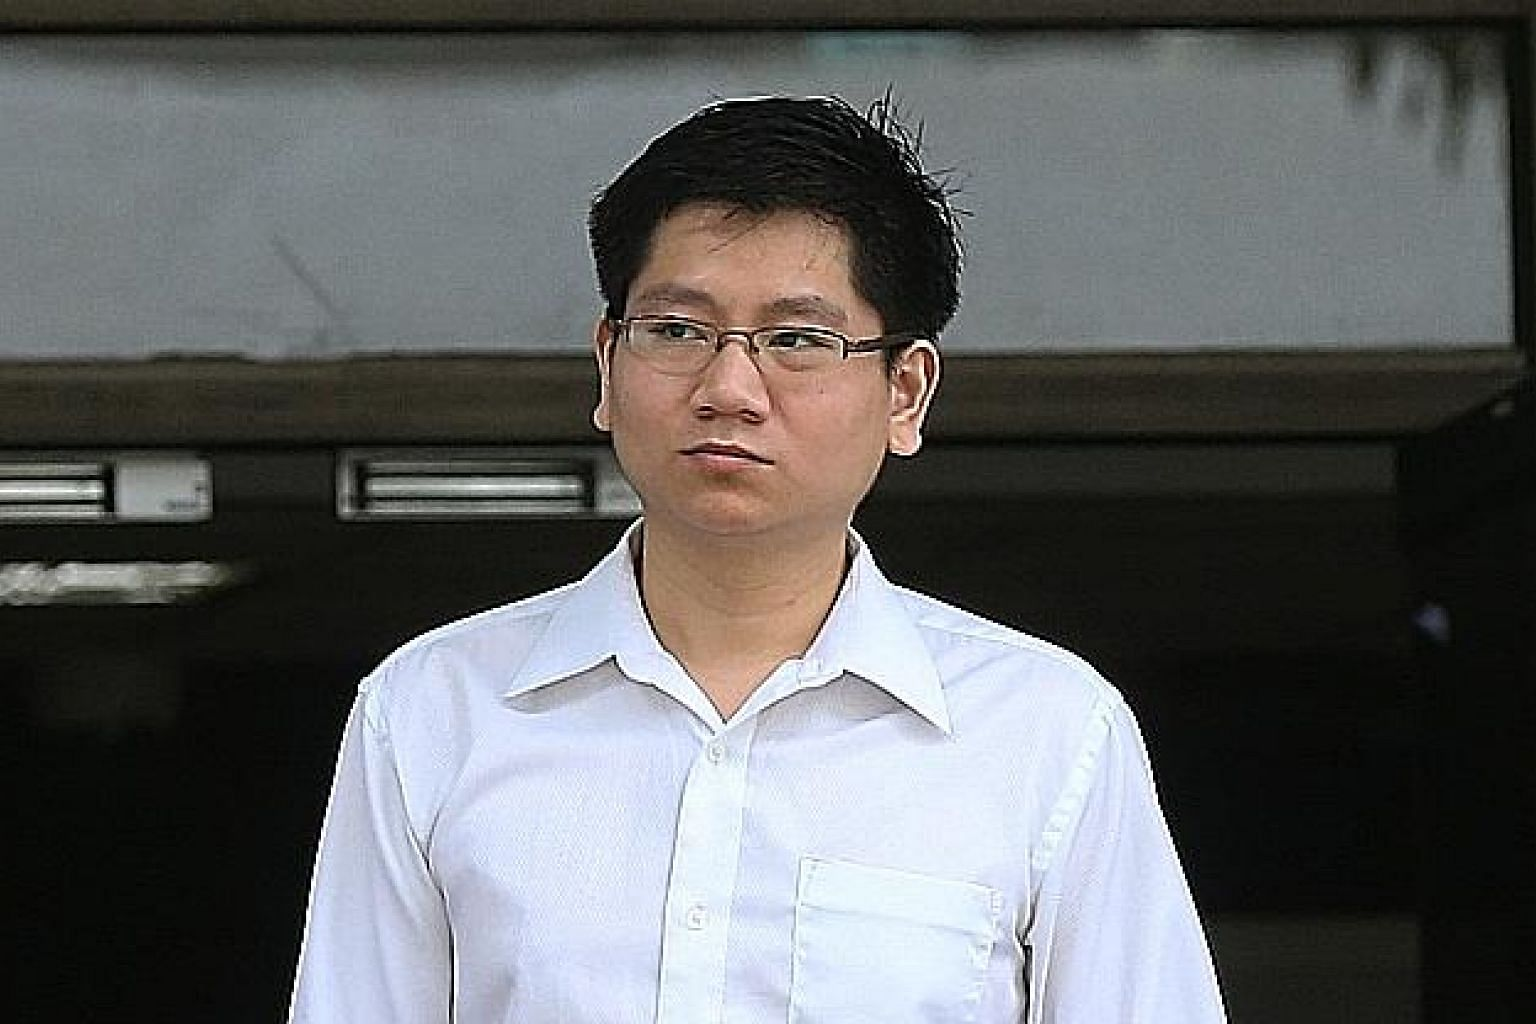 Wang Yong Jie leaving court yesterday. He admitted to committing mischief by scratching the right side of Mr Johnny Fang Hsiang Yoong's Suzuki Kizashi from the back to the front at the open-air carpark at The Grandstand mall in Turf Club Road on Marc